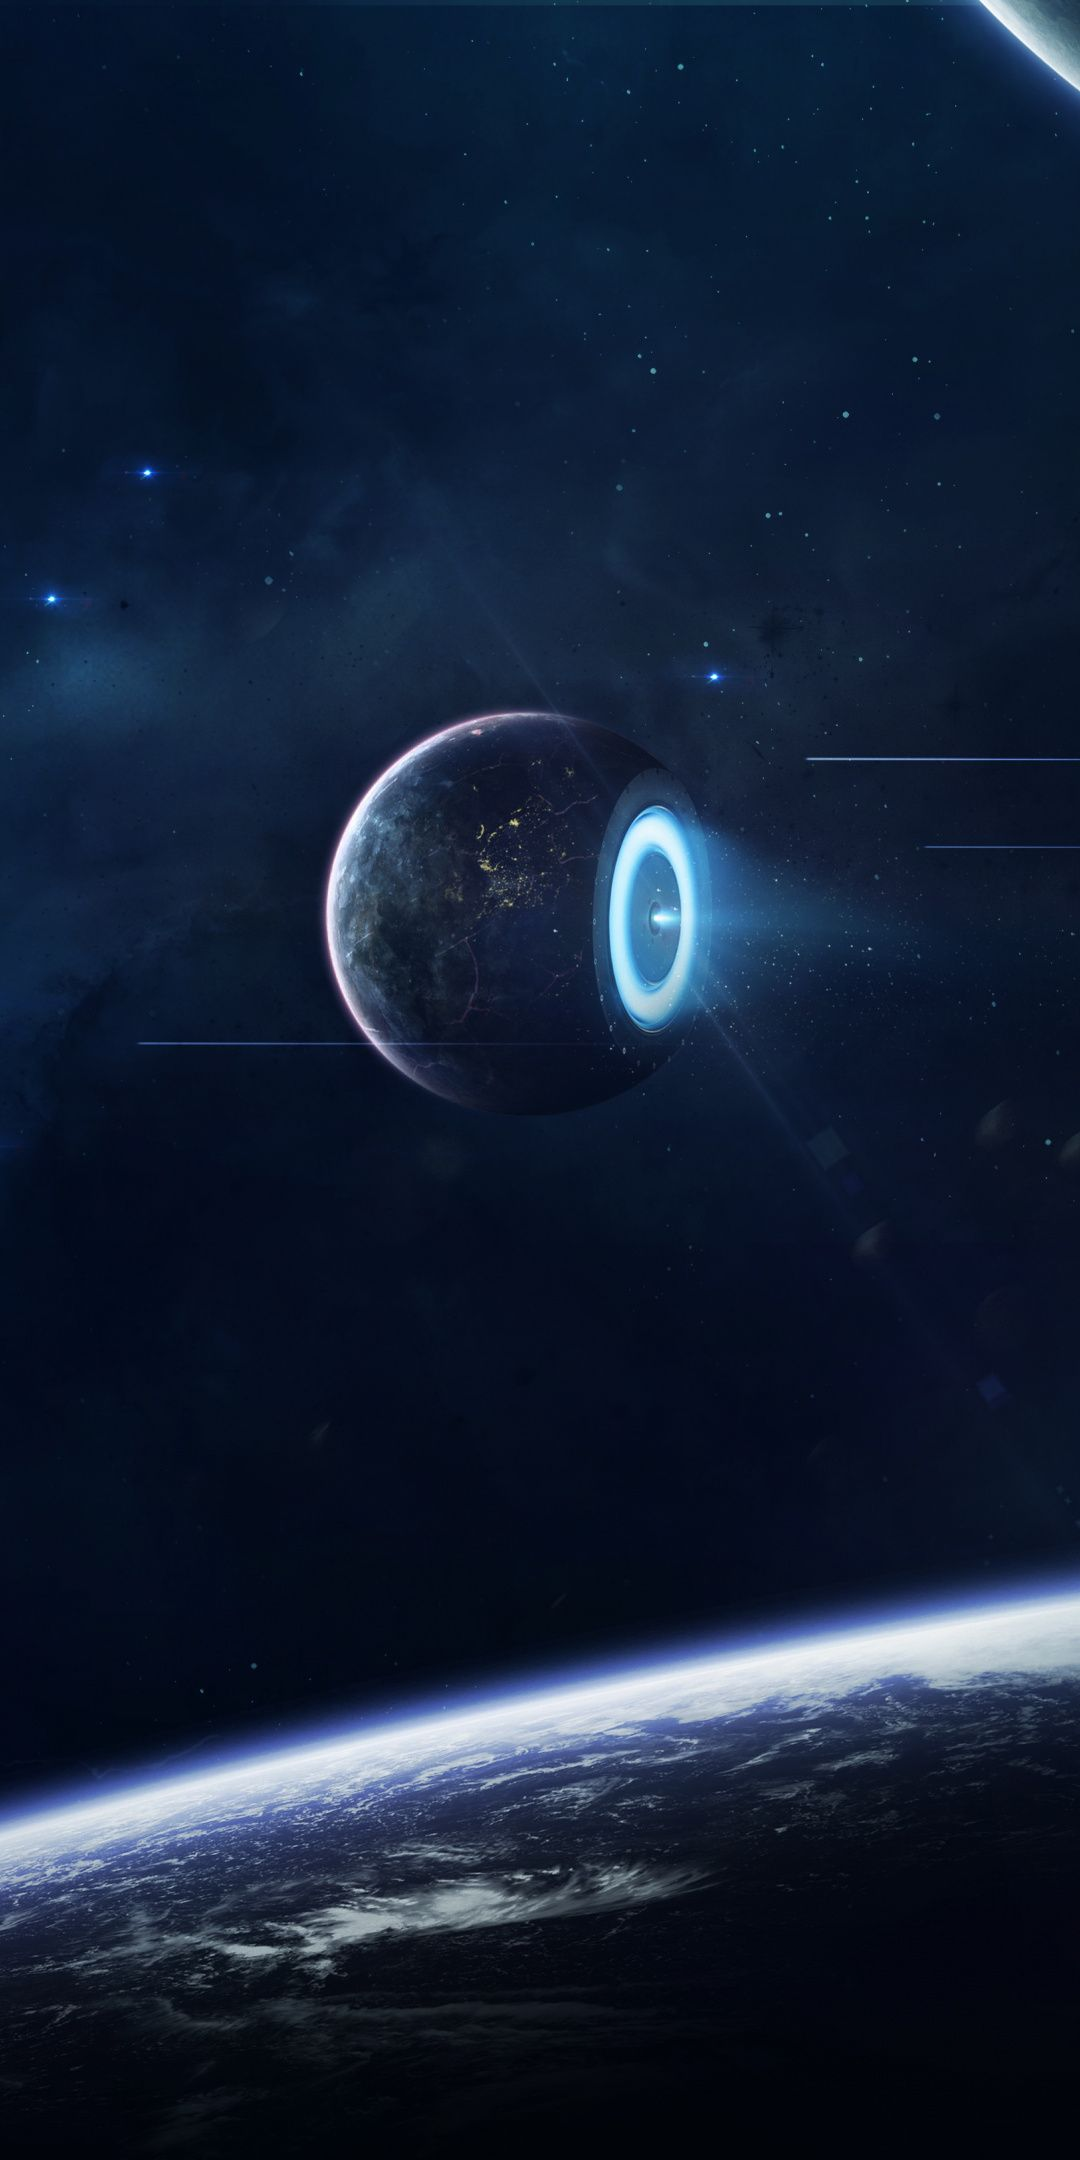 Ion Thruster Solar Salvation Radiation Planet Space Fantasy 1080x2160 Wallpaper Surreal Art Sci Fi Concept Art Planets